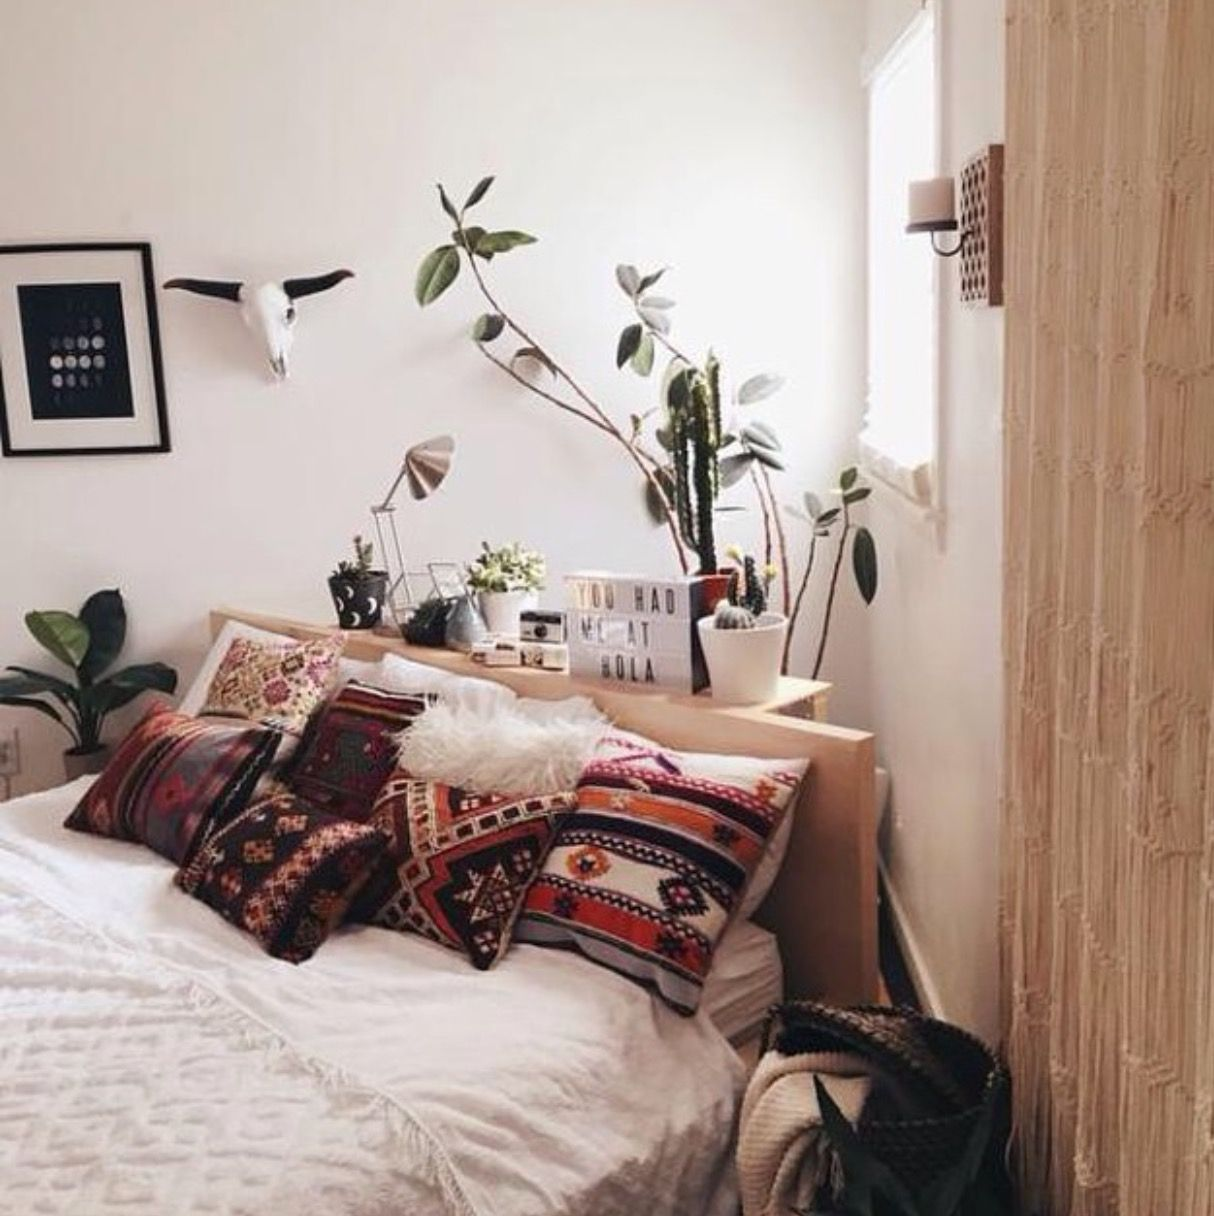 Plants in the bedroom diagonal bed placement not a fan home